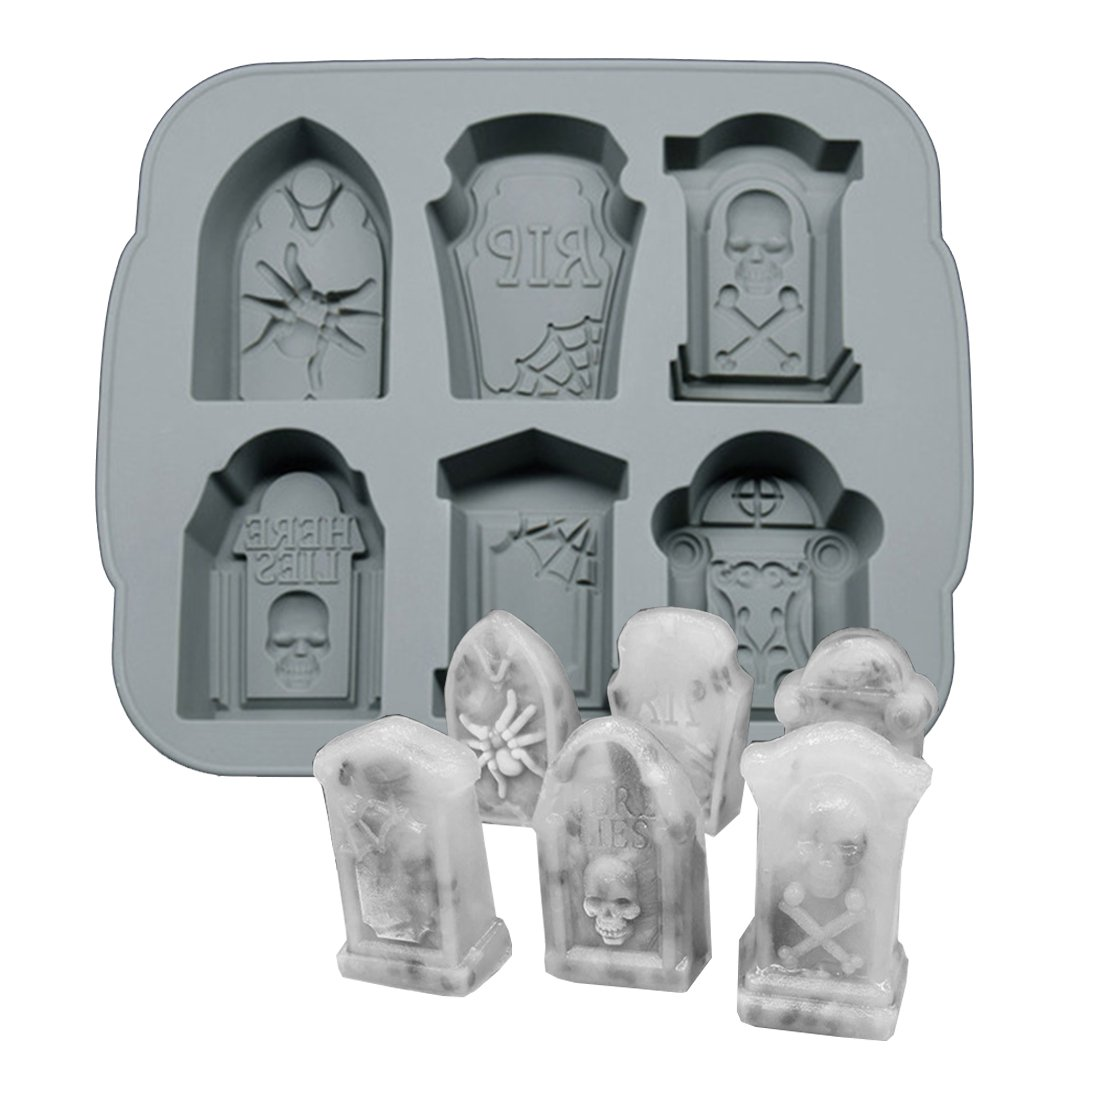 Silicone Ice Cube Trays Halloween RIP Gravestone Mold for Ice, Candy, Cake, Soap